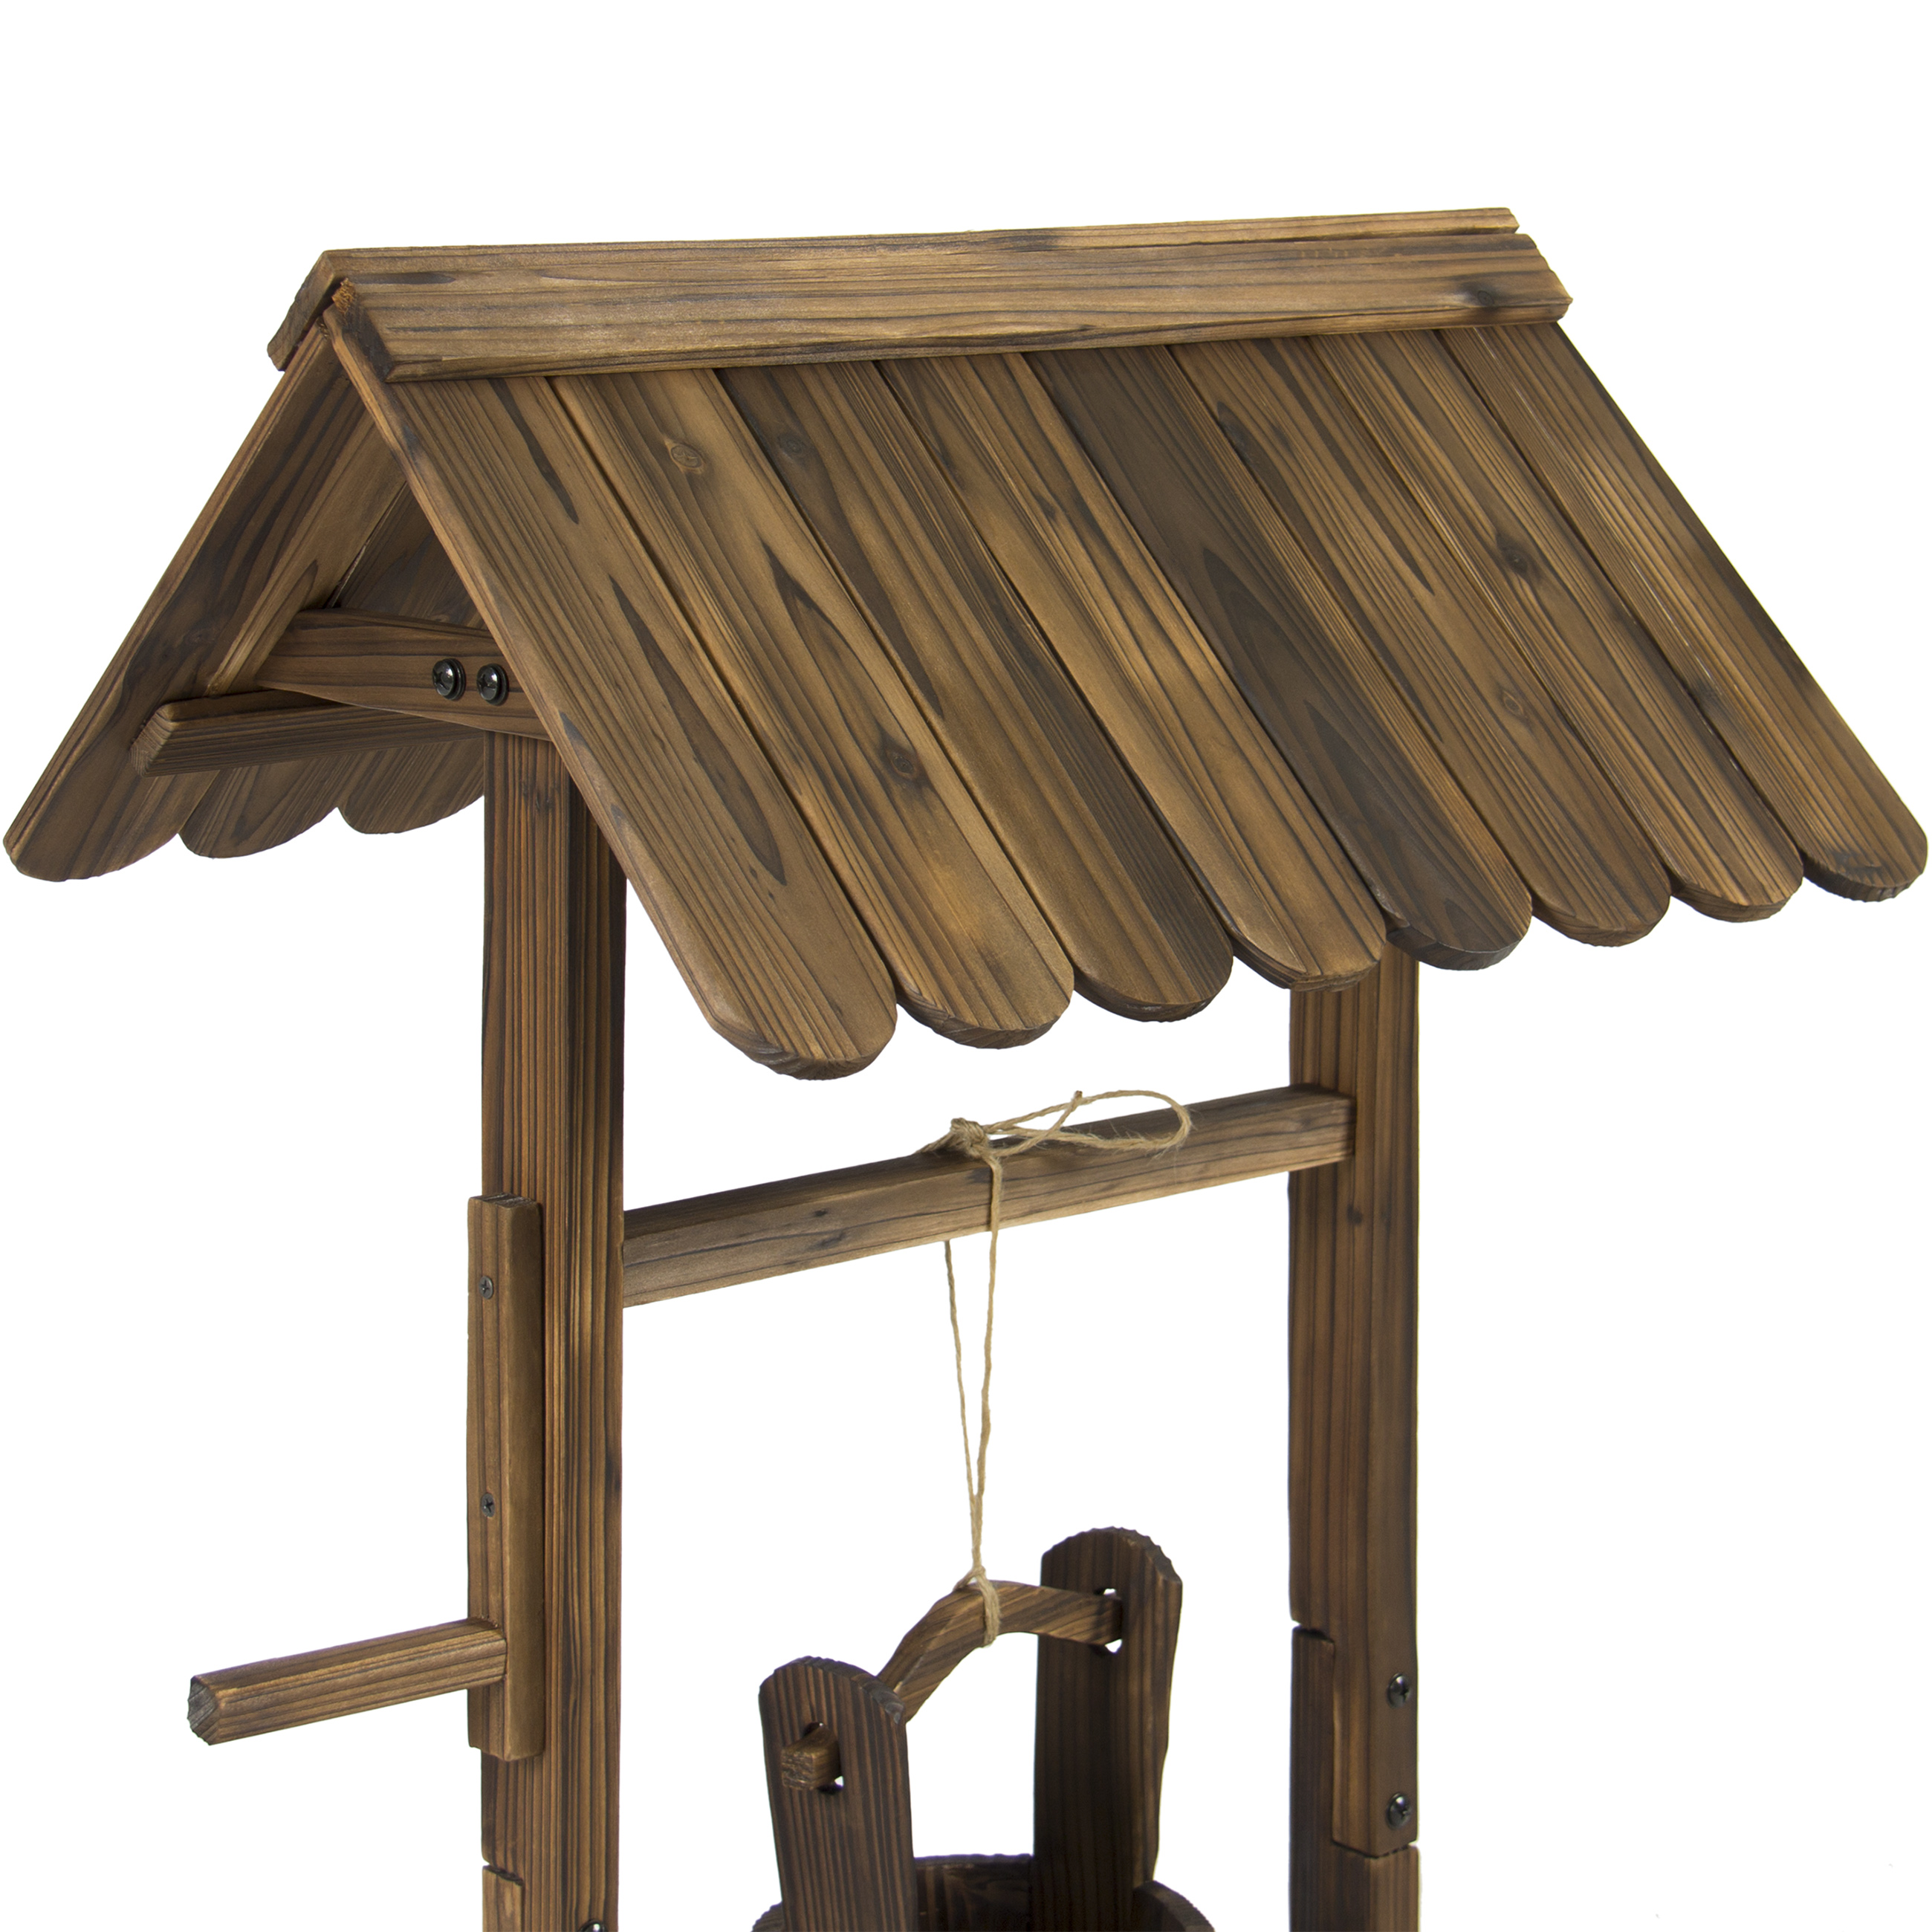 Best Choice Products Wooden Wishing Well Bucket Flower Planter Patio Garden Outdoor Home Decor